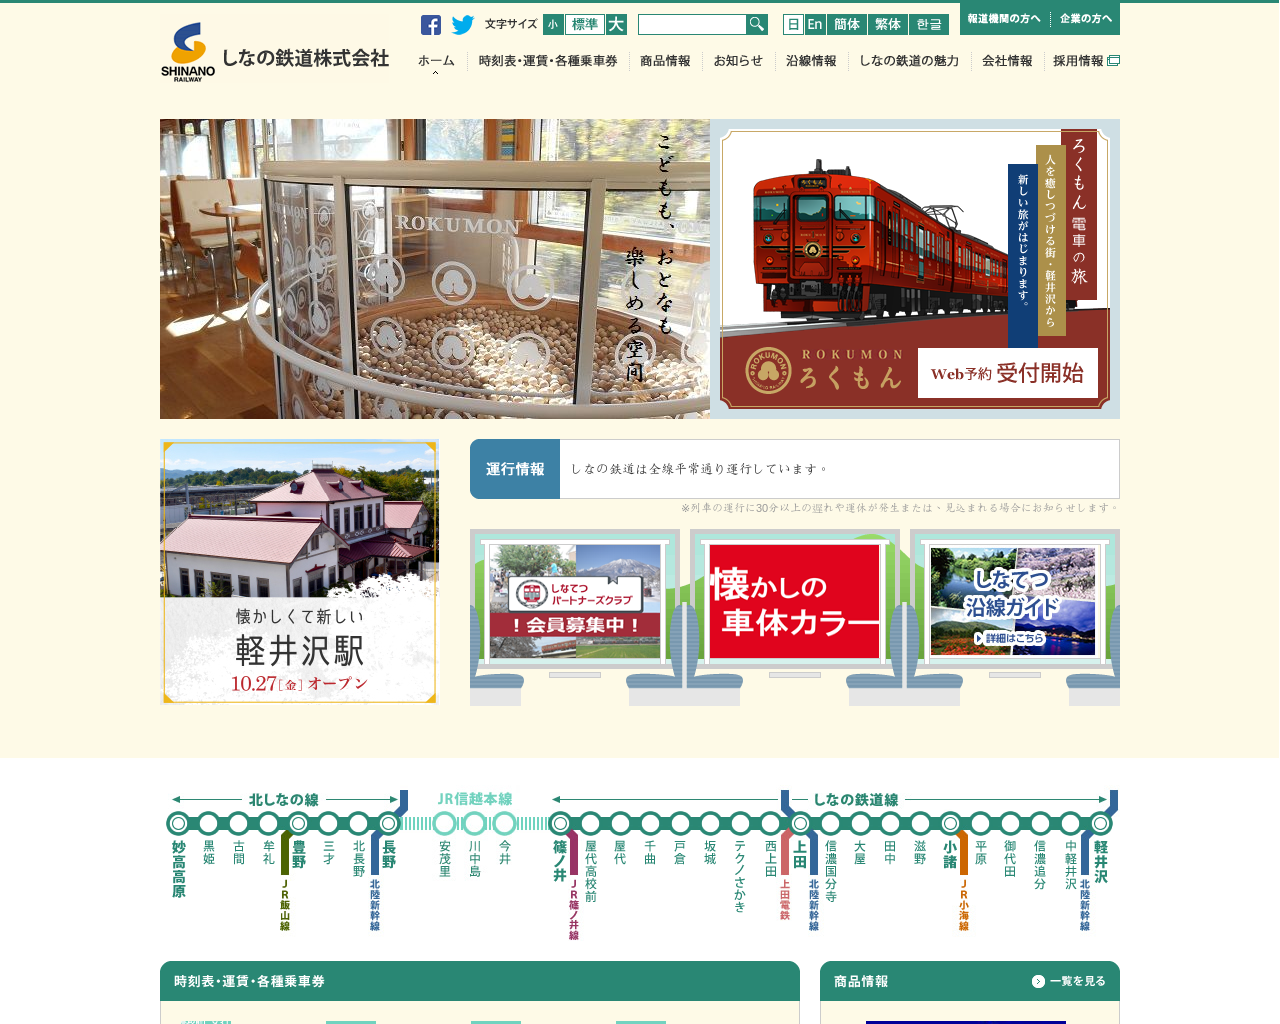 www.shinanorailway.co.jp(2018/04/15 20:00:41)